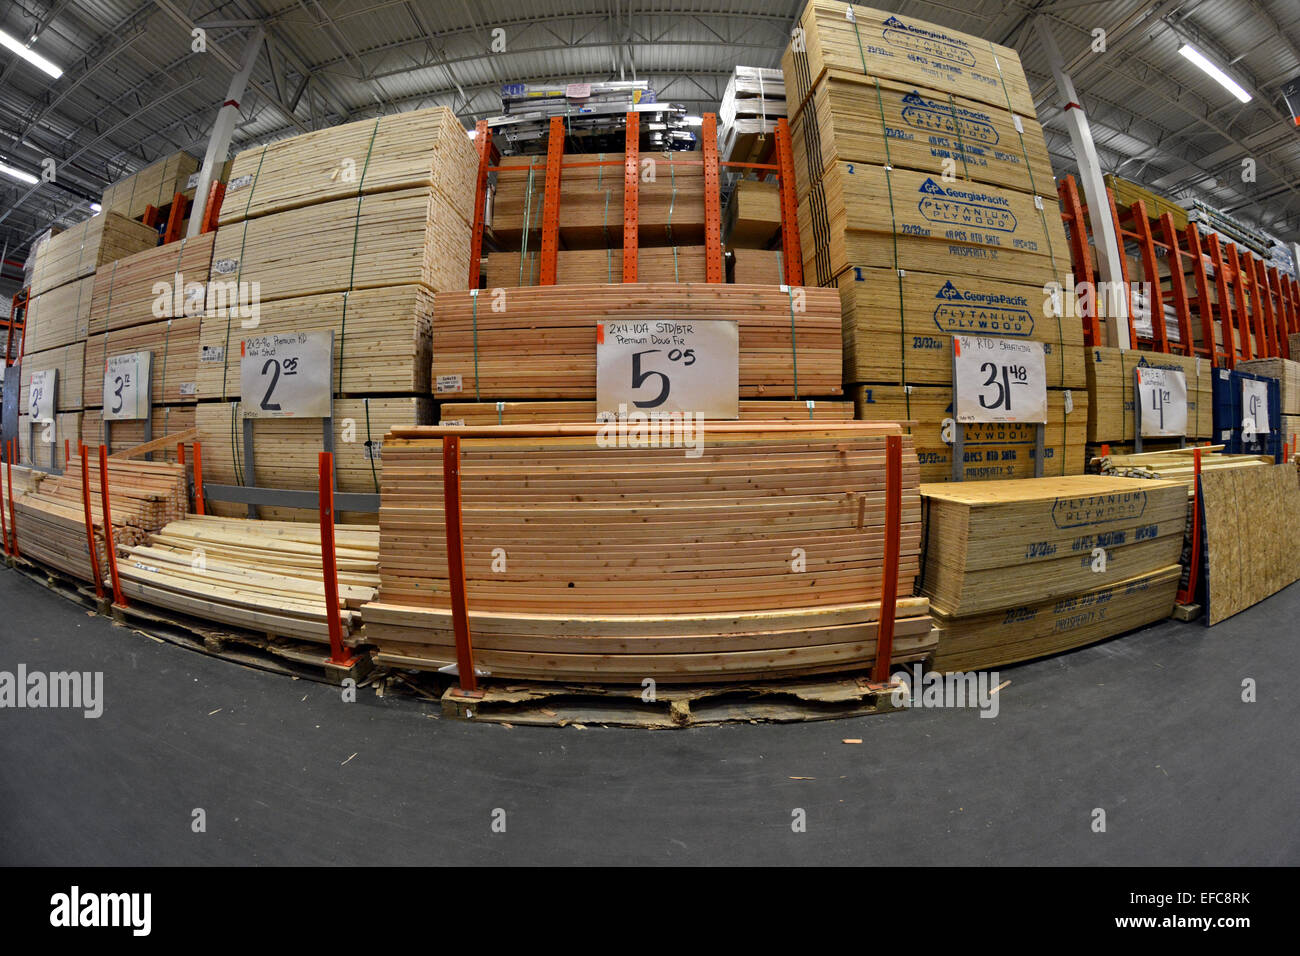 A fisheye lens view of lumber for sale at home depot in for Wood decking boards for sale